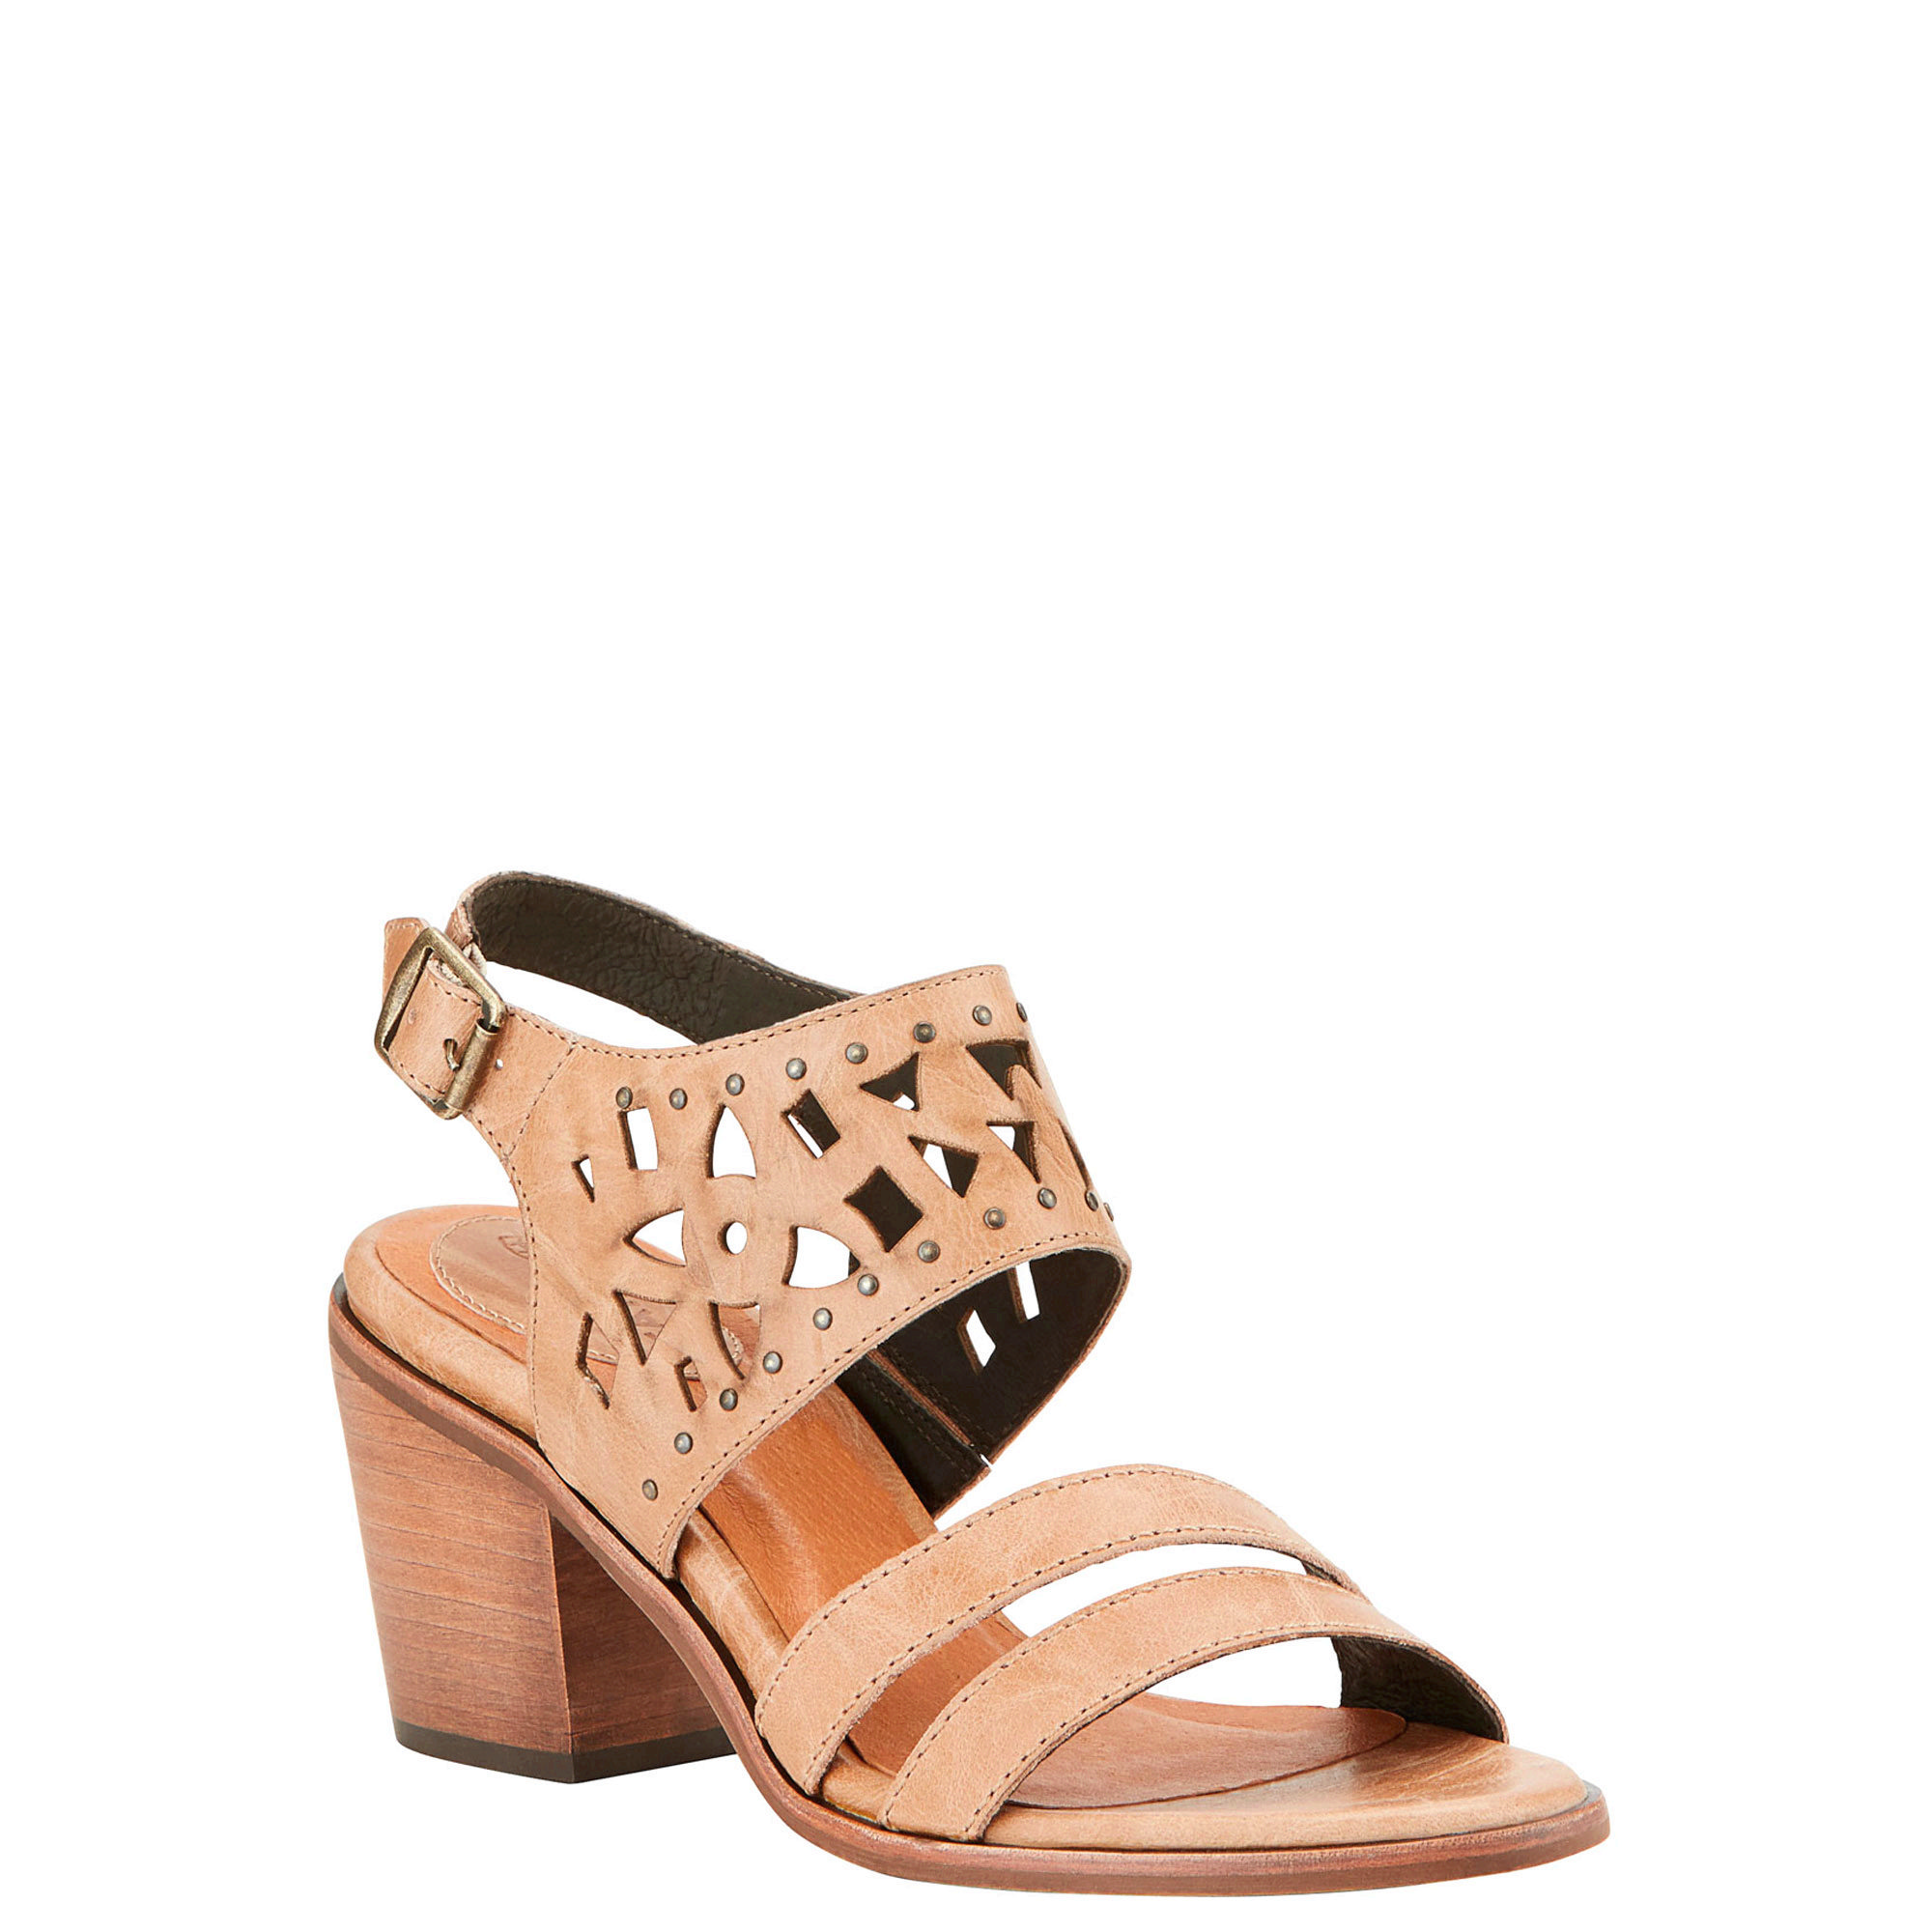 Ariat Women's Poppy Sandal